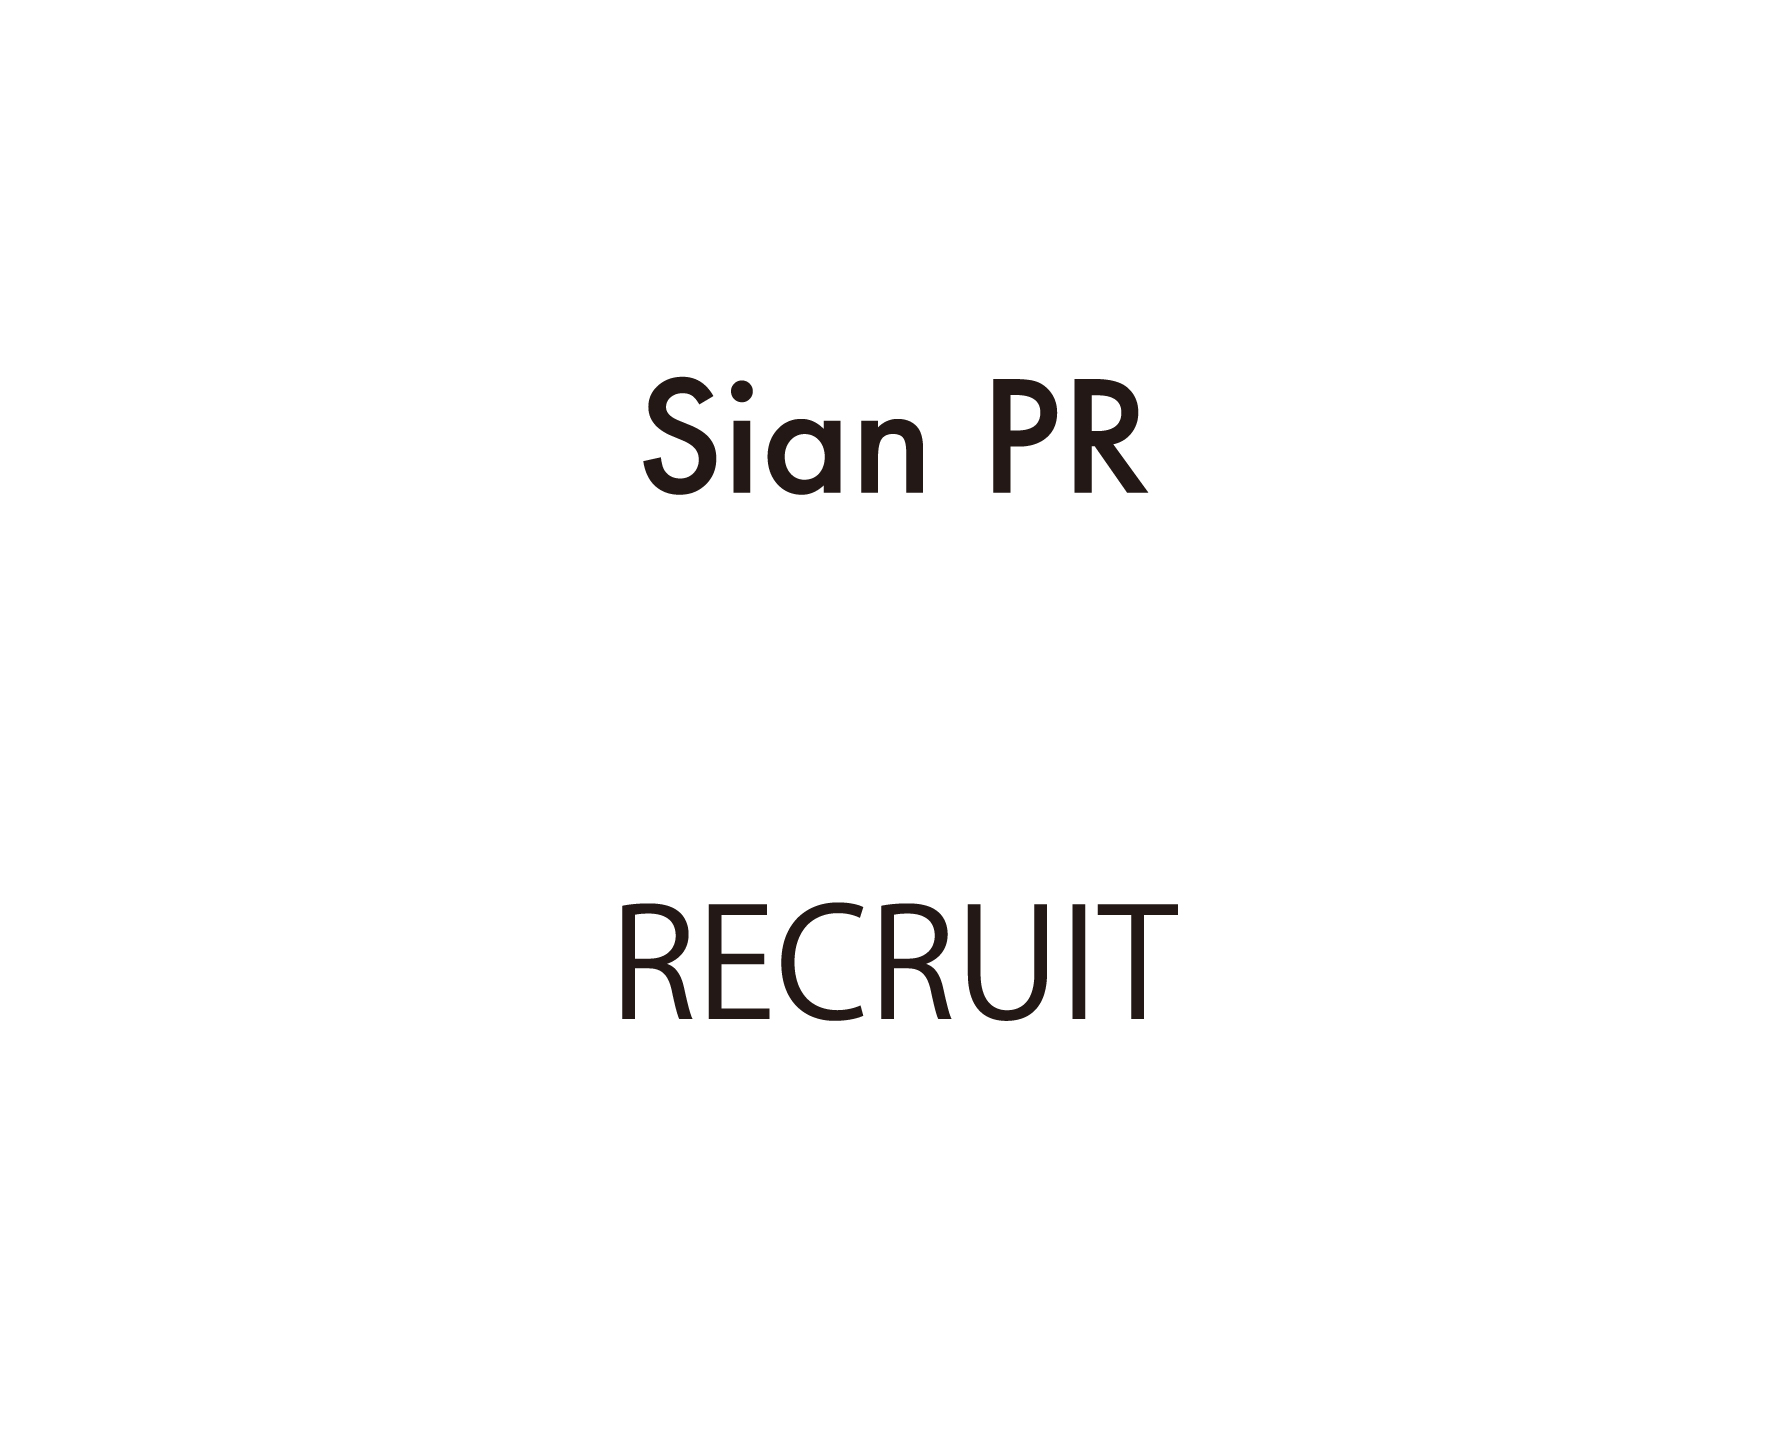 STAFF RECRUIT